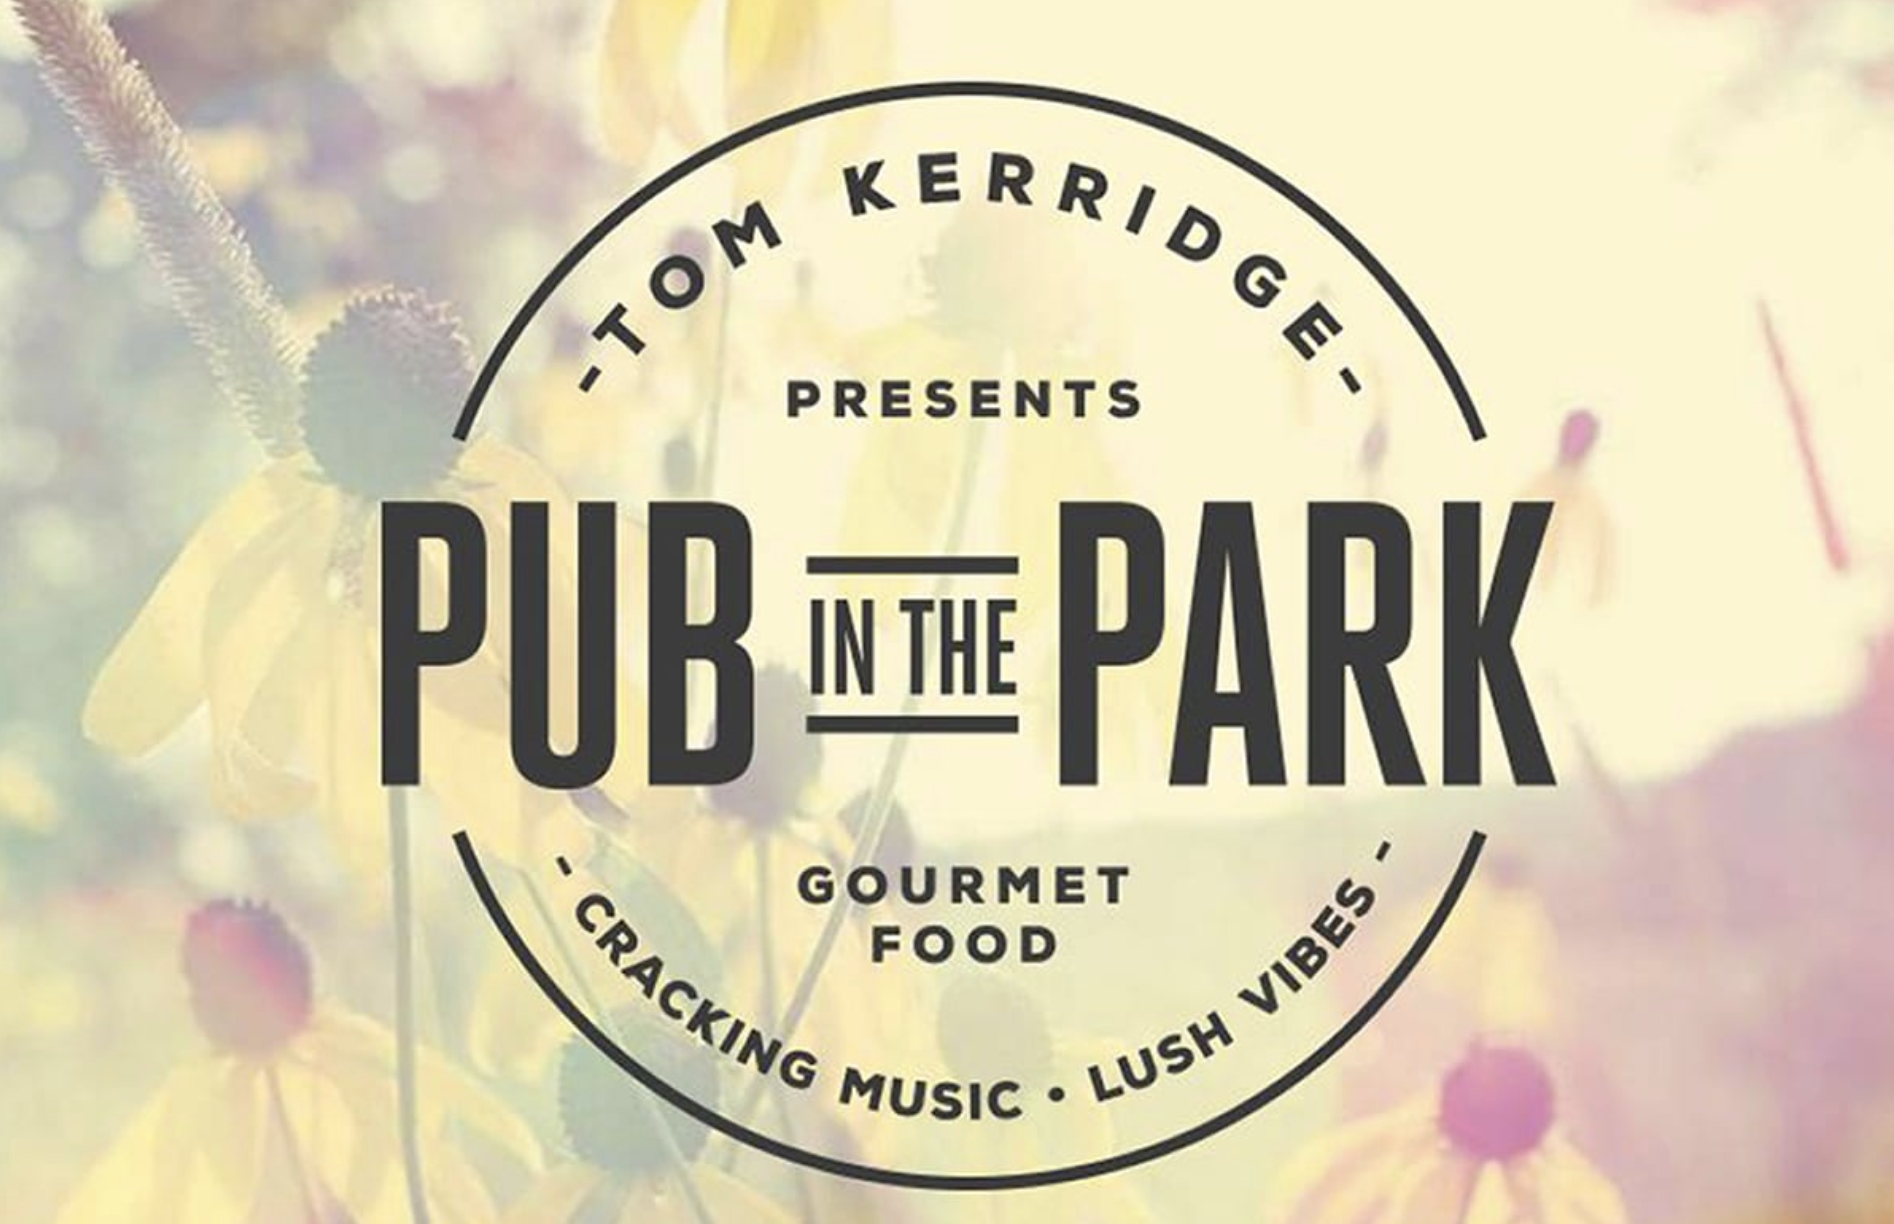 PUB IN THE PARK, BATH - 21st - 23rd JUNE 2019We will be back serving up prosecco in the beautiful city of Bath from 21 - 23 June 2019. Come and say hi!